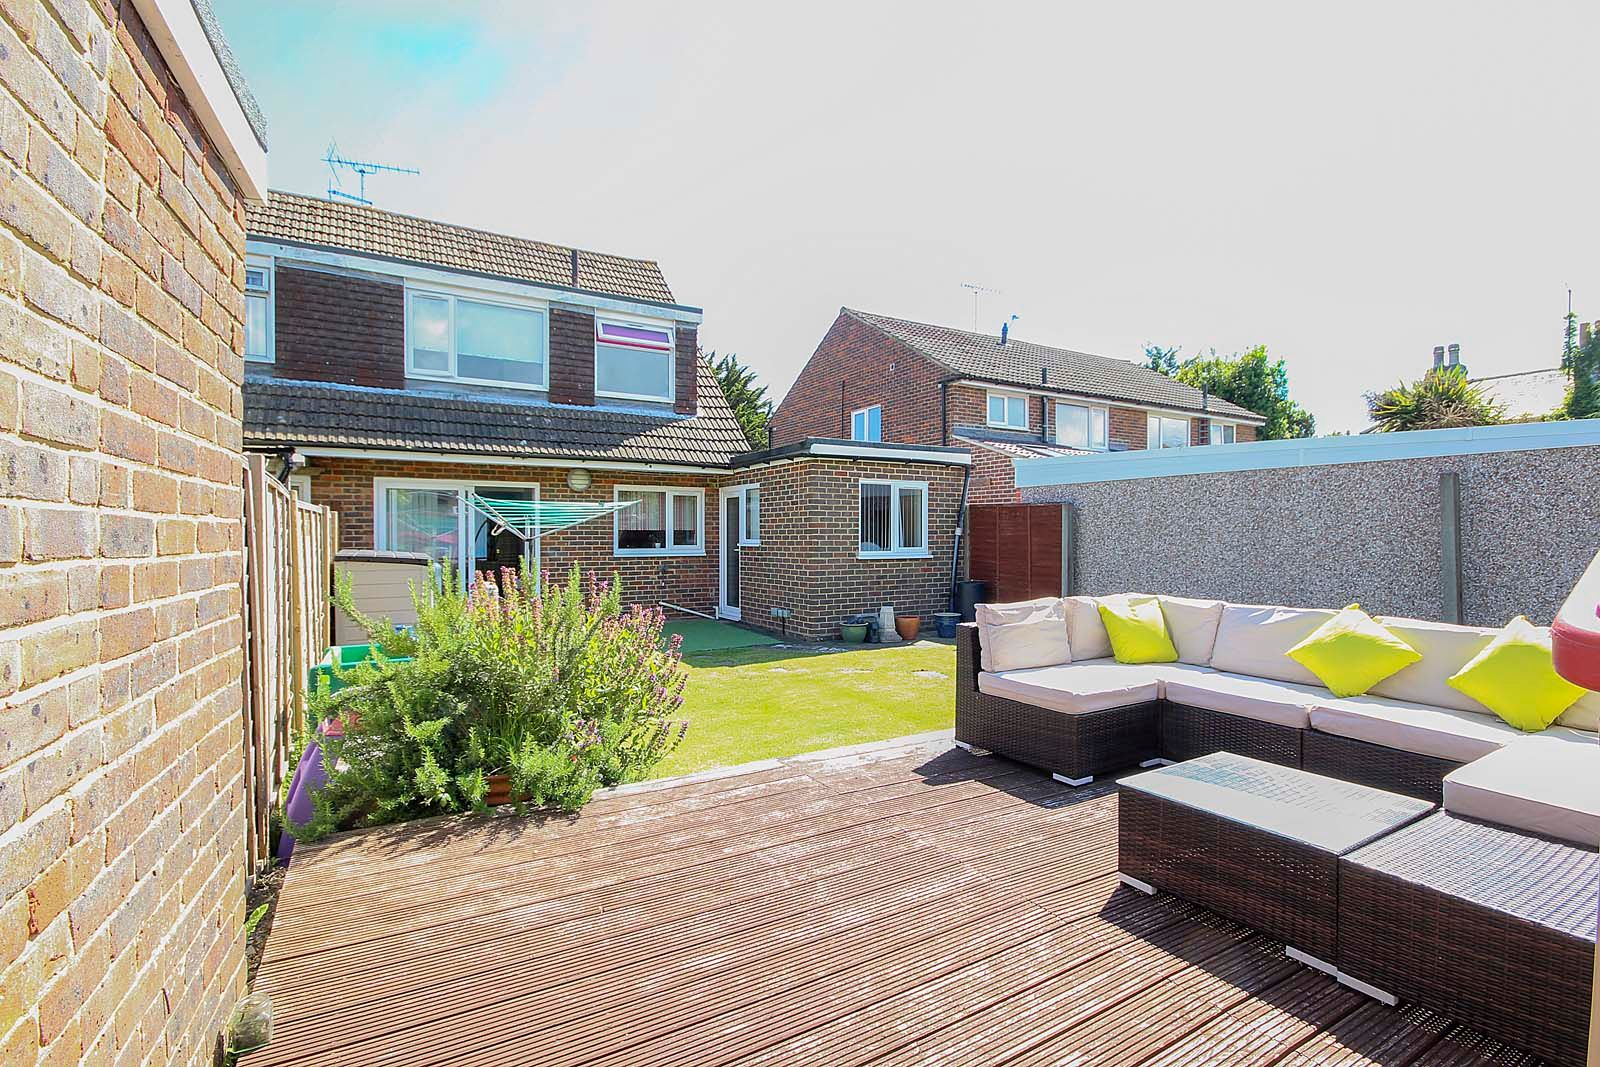 3 bed house for sale in Old Worthing Road 9